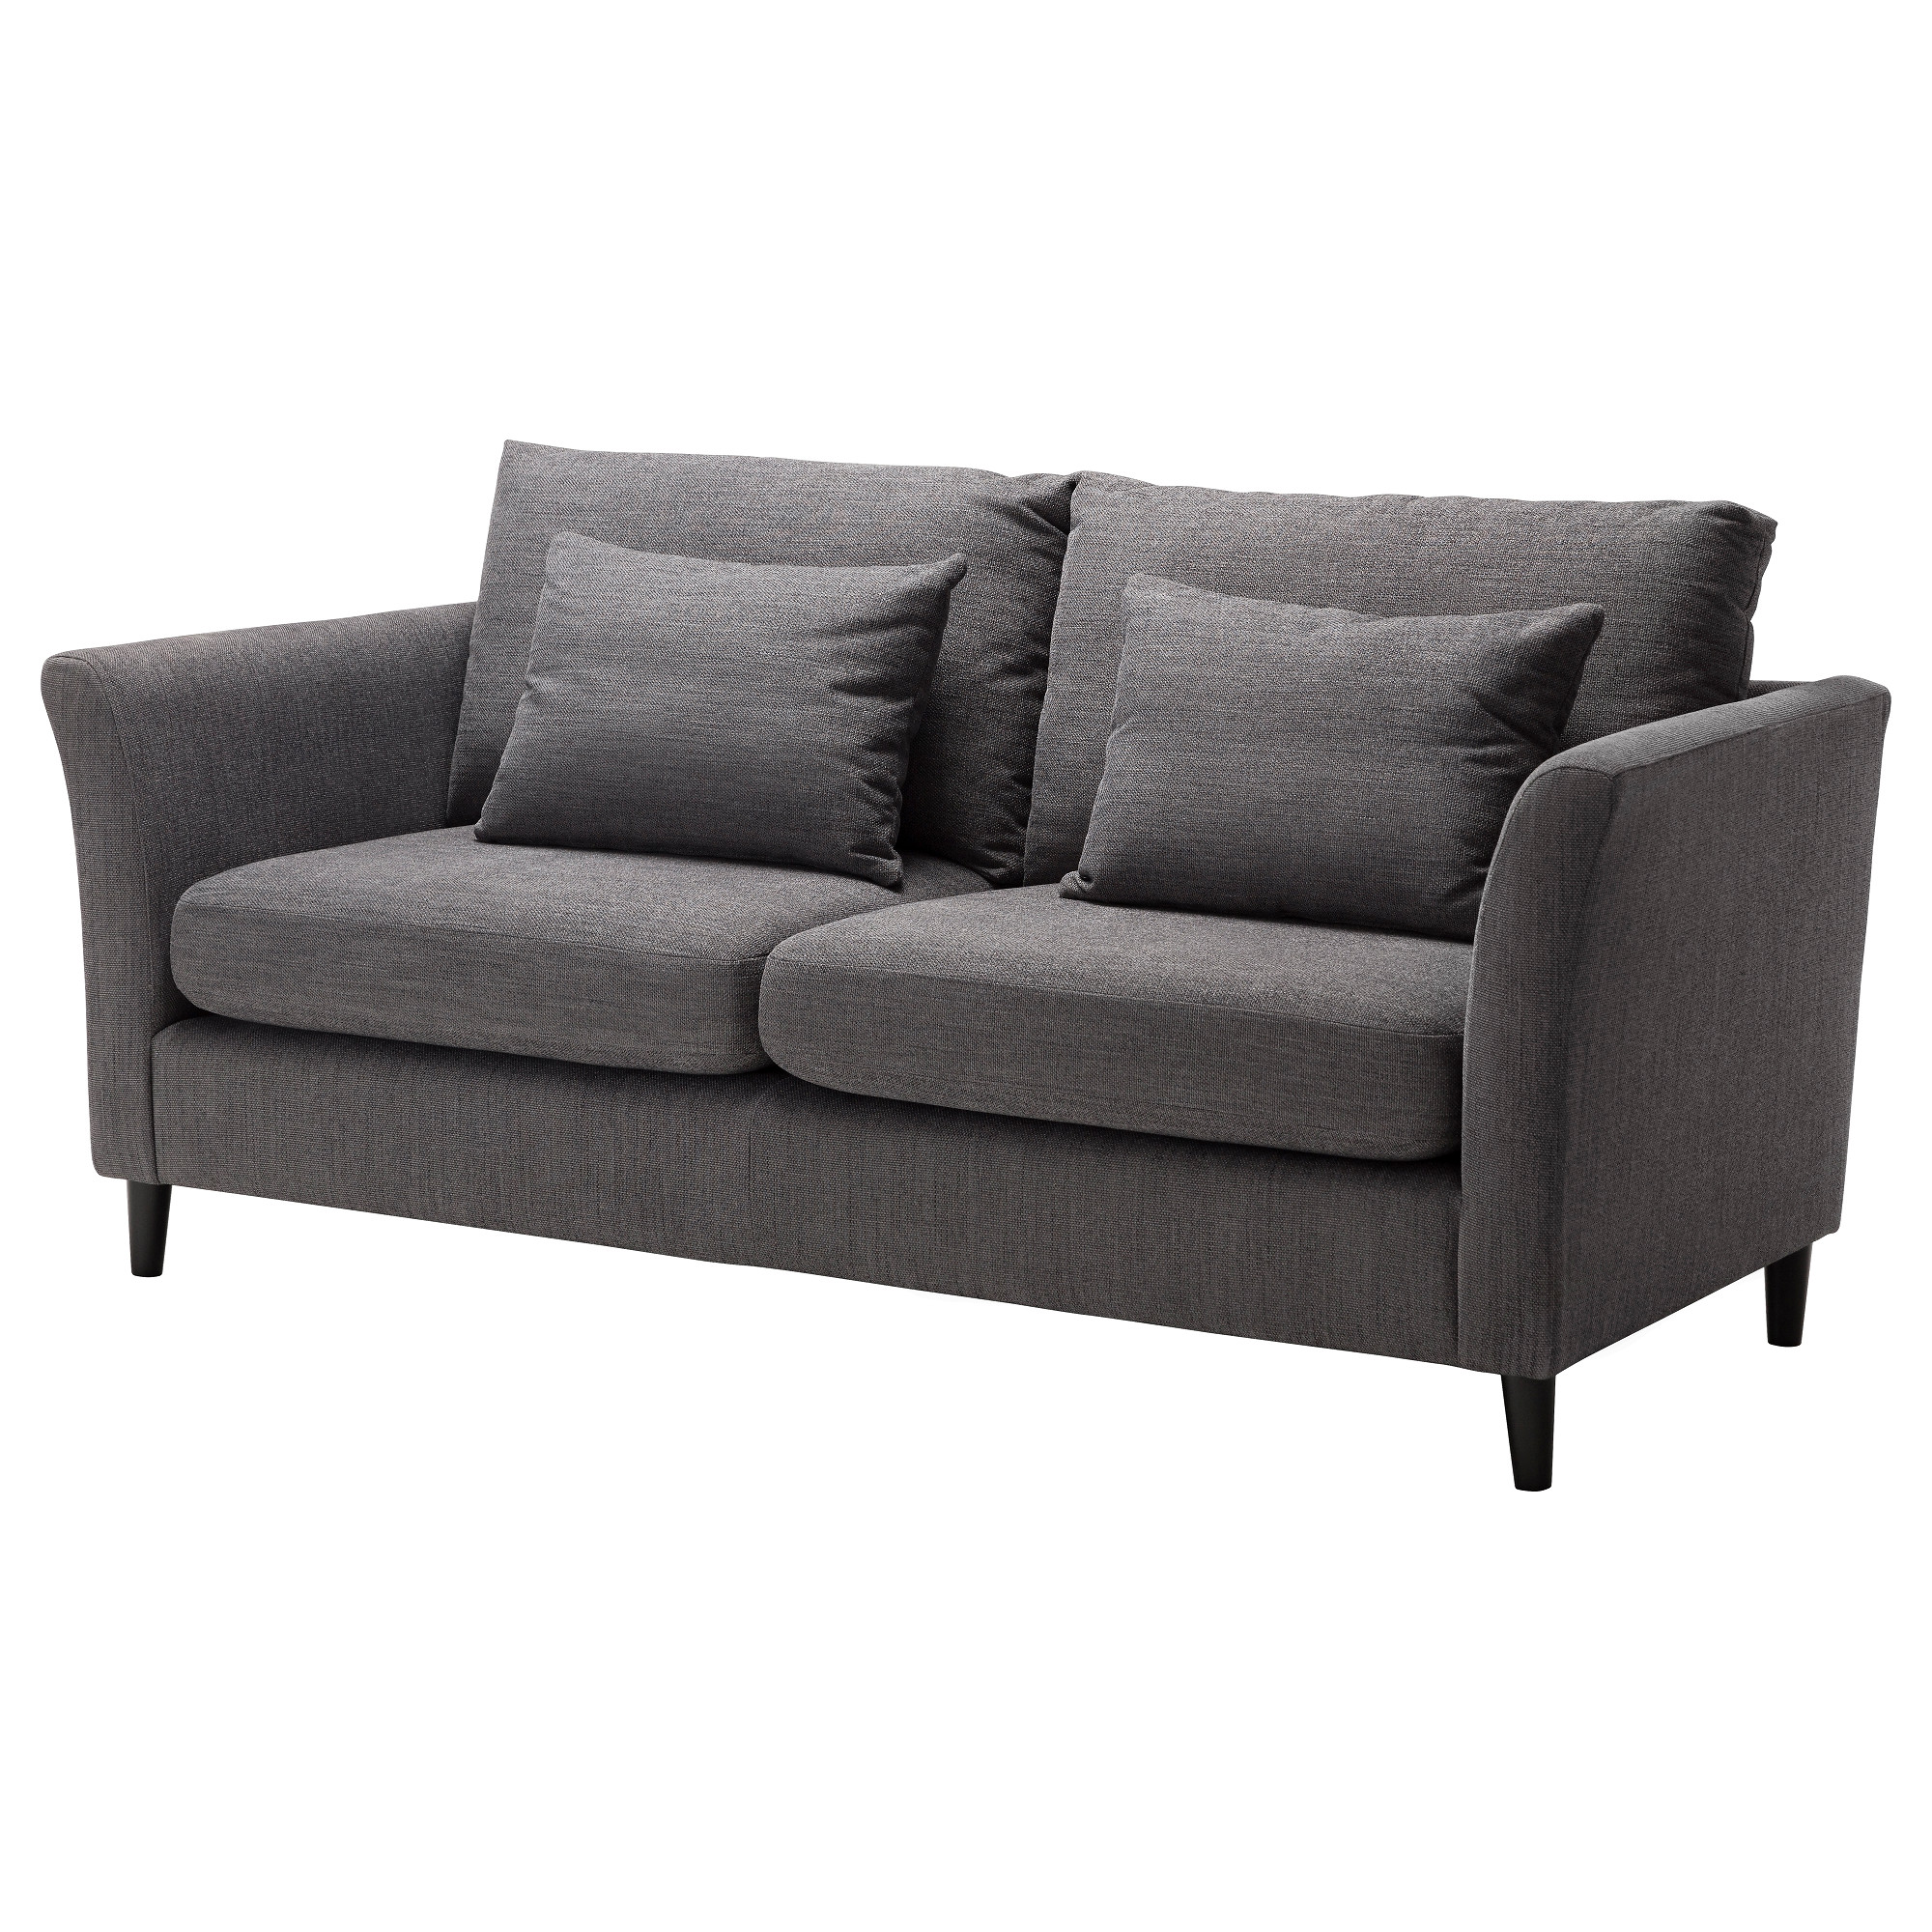 BANKERYD Three seat sofa Hensta grey